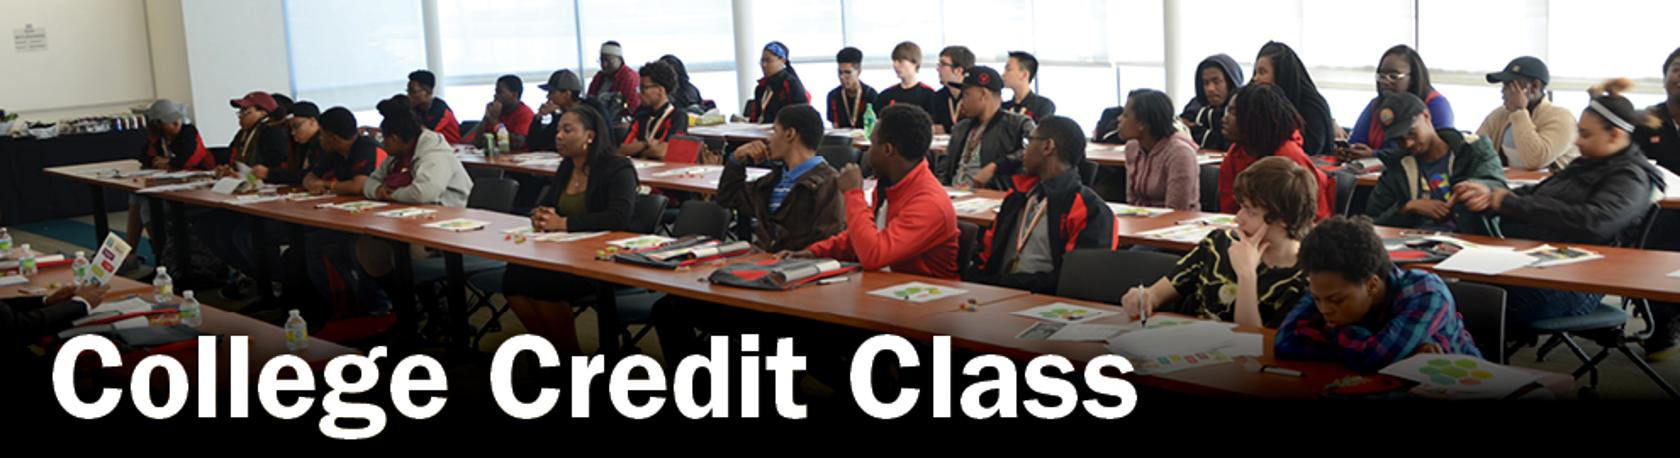 College Credit Classes